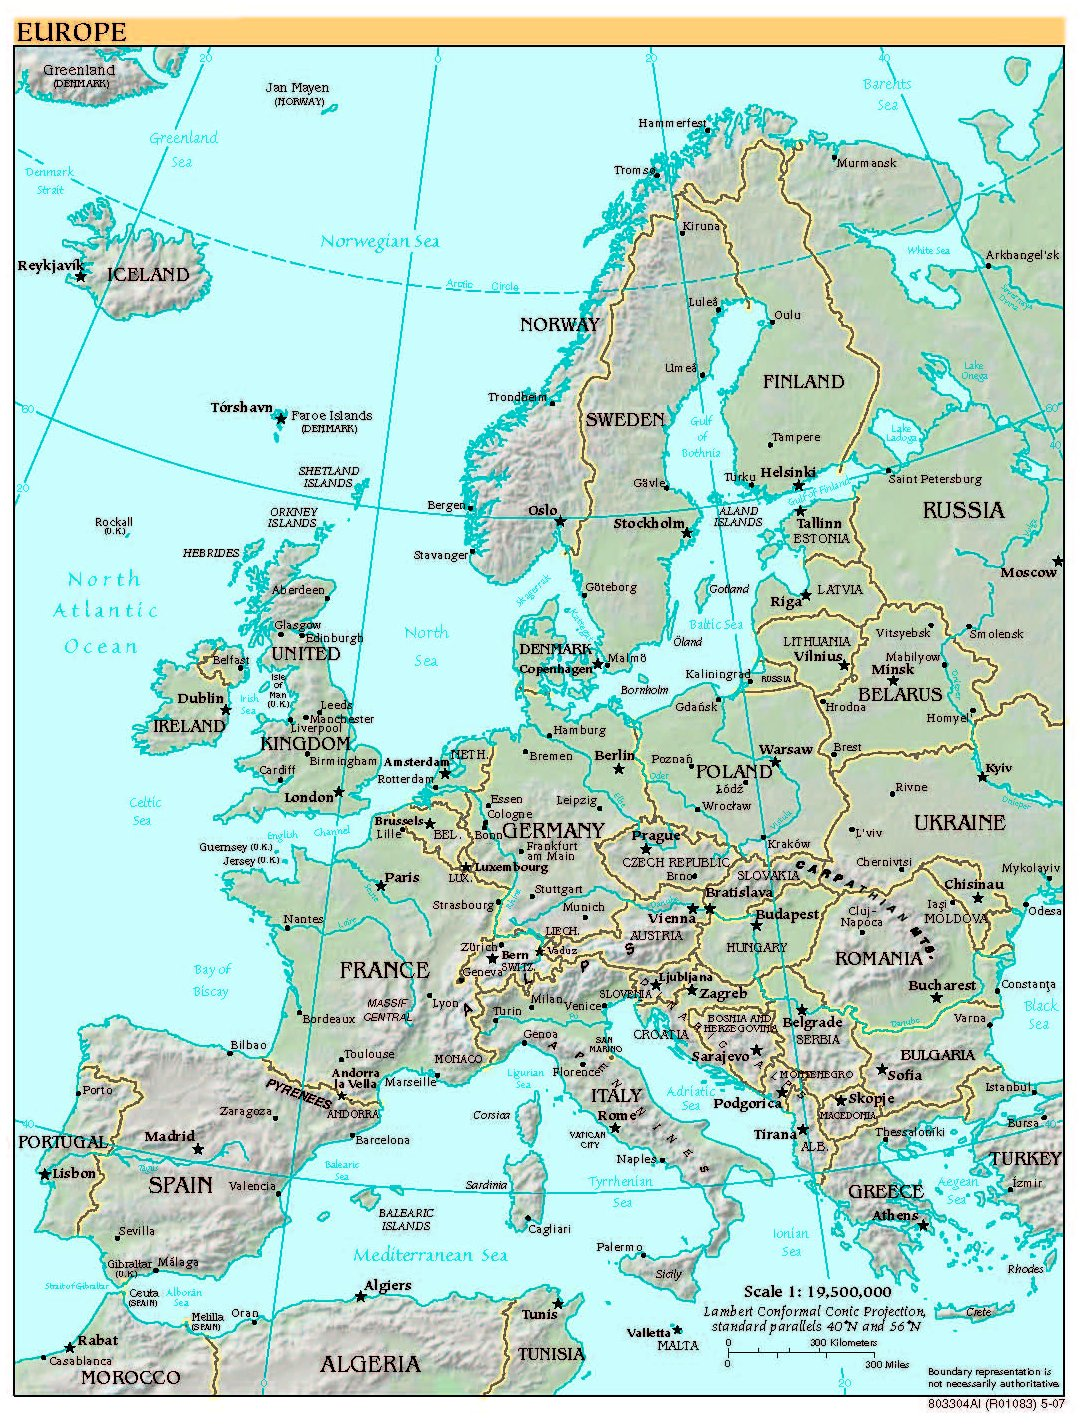 Free high resolution map of europe jpg 454k gumiabroncs Image collections